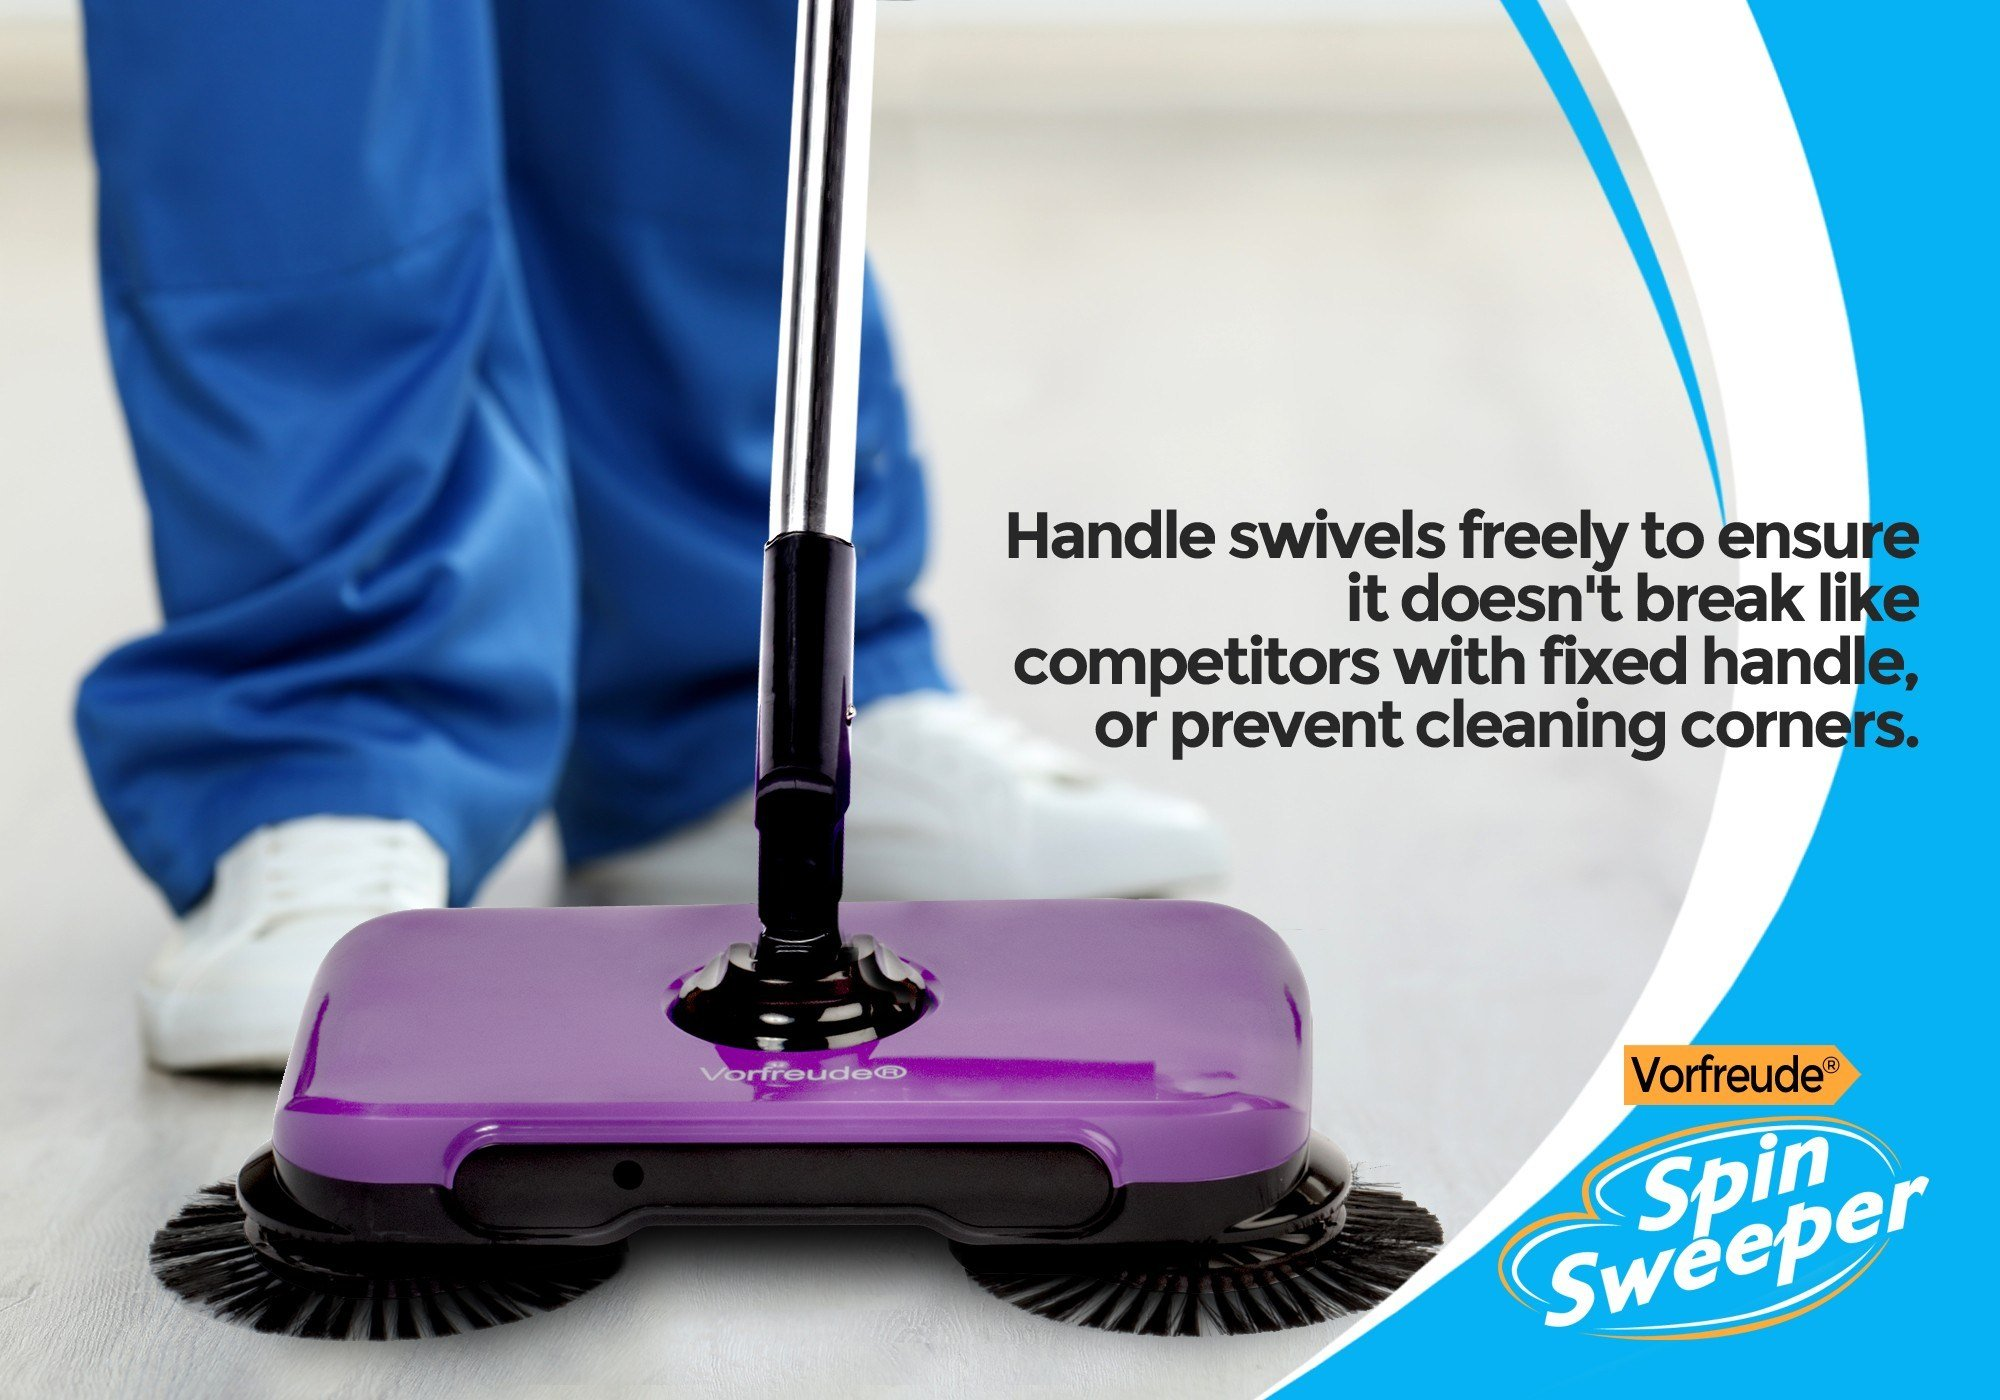 Vorfreude Pro Spin Sweeper Automatic Hand Push Broom – Cordless Stick Vacuum Manual Triple Brush Rotary Floor Spinbrush - Reusable Cleaning Dust Pan Pad - 360 Swivel Rotating Handle - 900 ml Bin